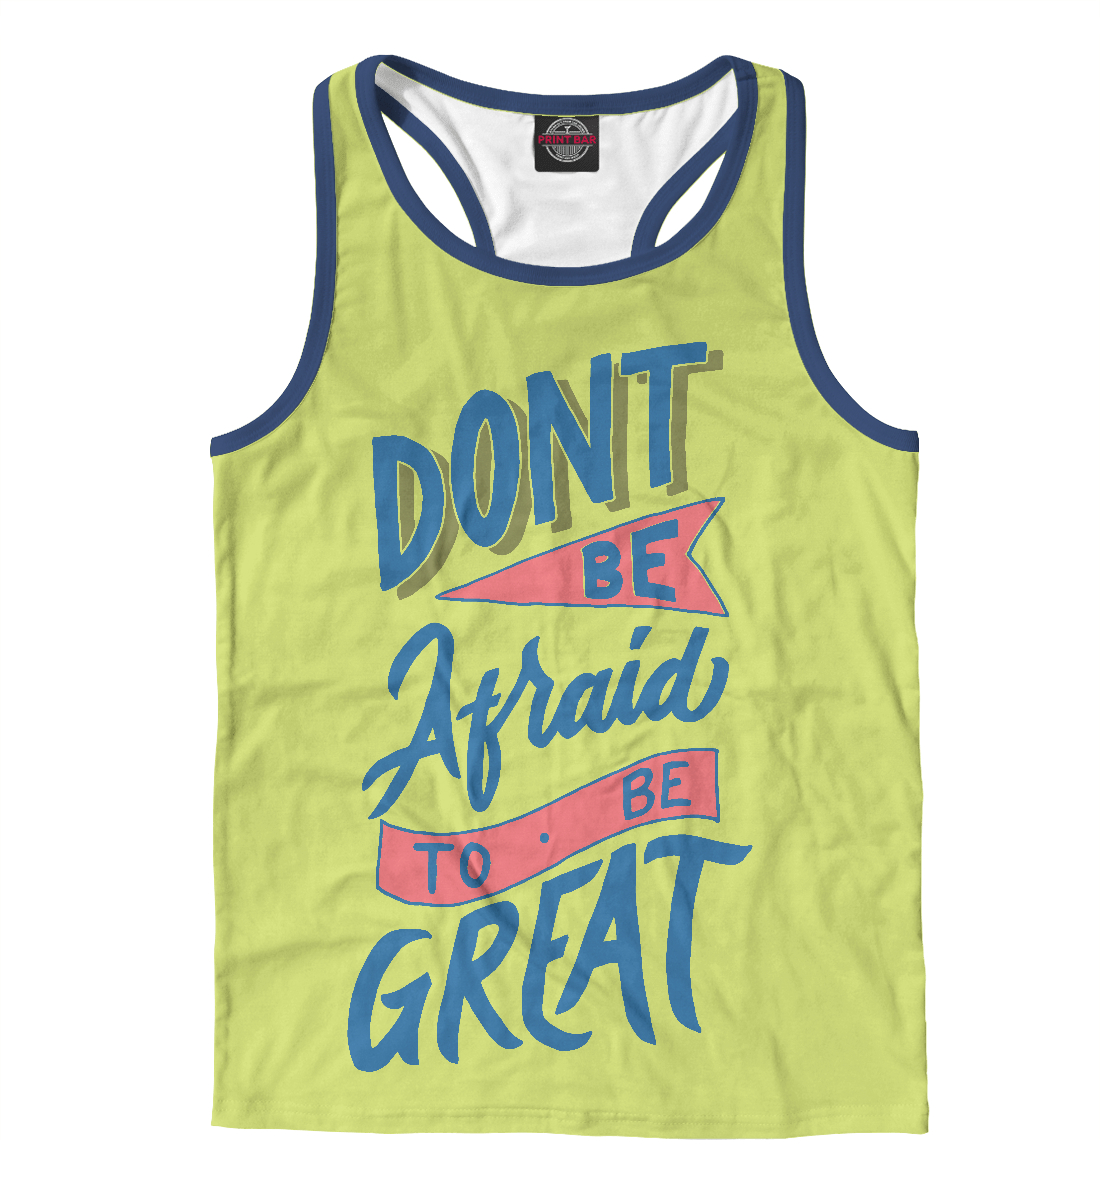 Don't be Afraid to be Great недорого